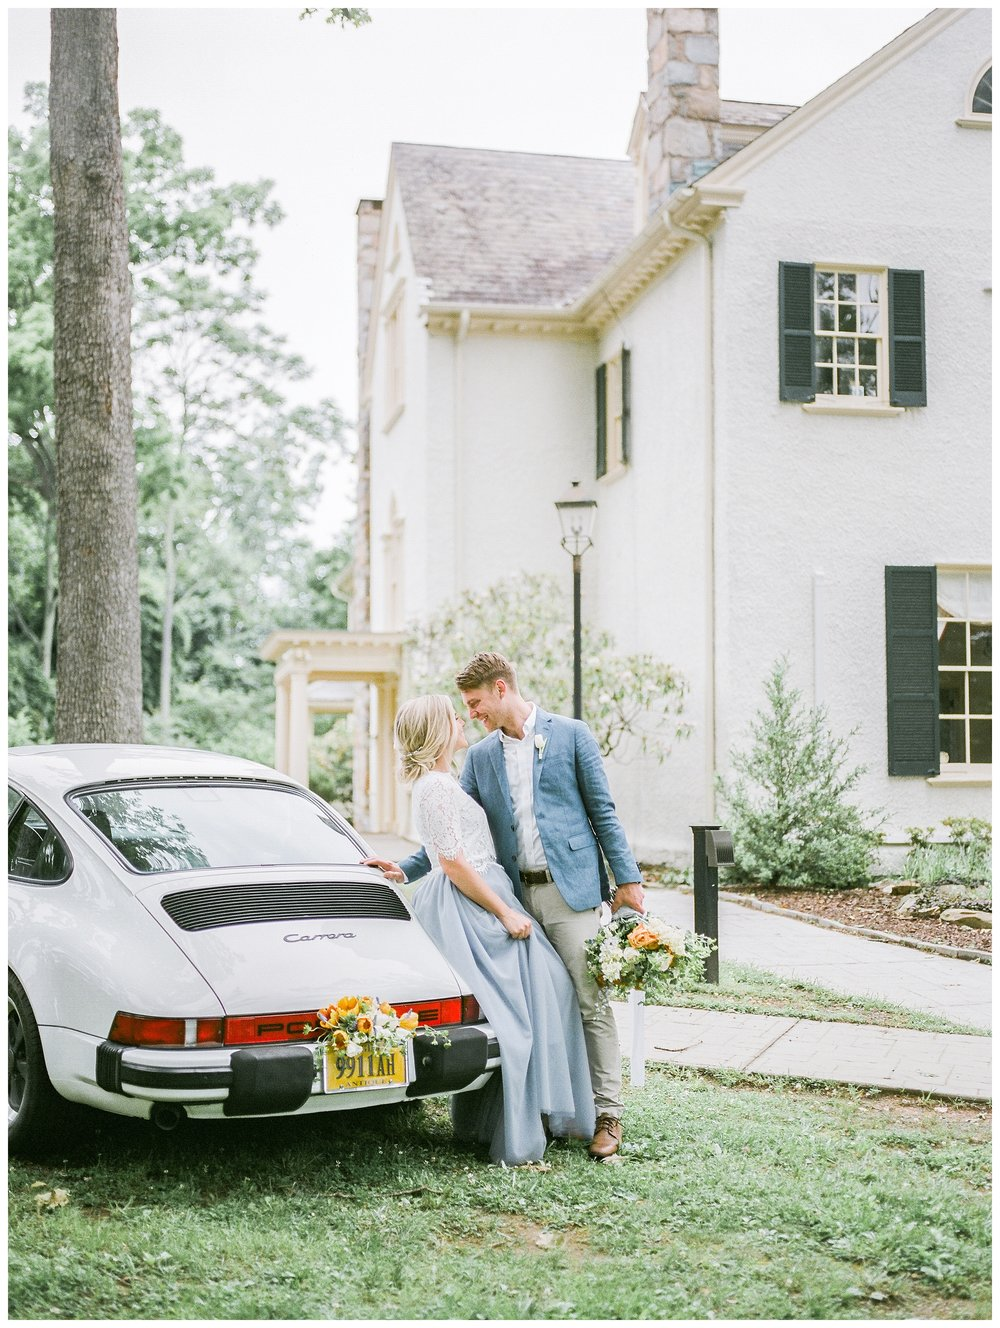 Rust Manor Wedding | Virginia Wedding Photographer Kir Tuben_0001.jpg